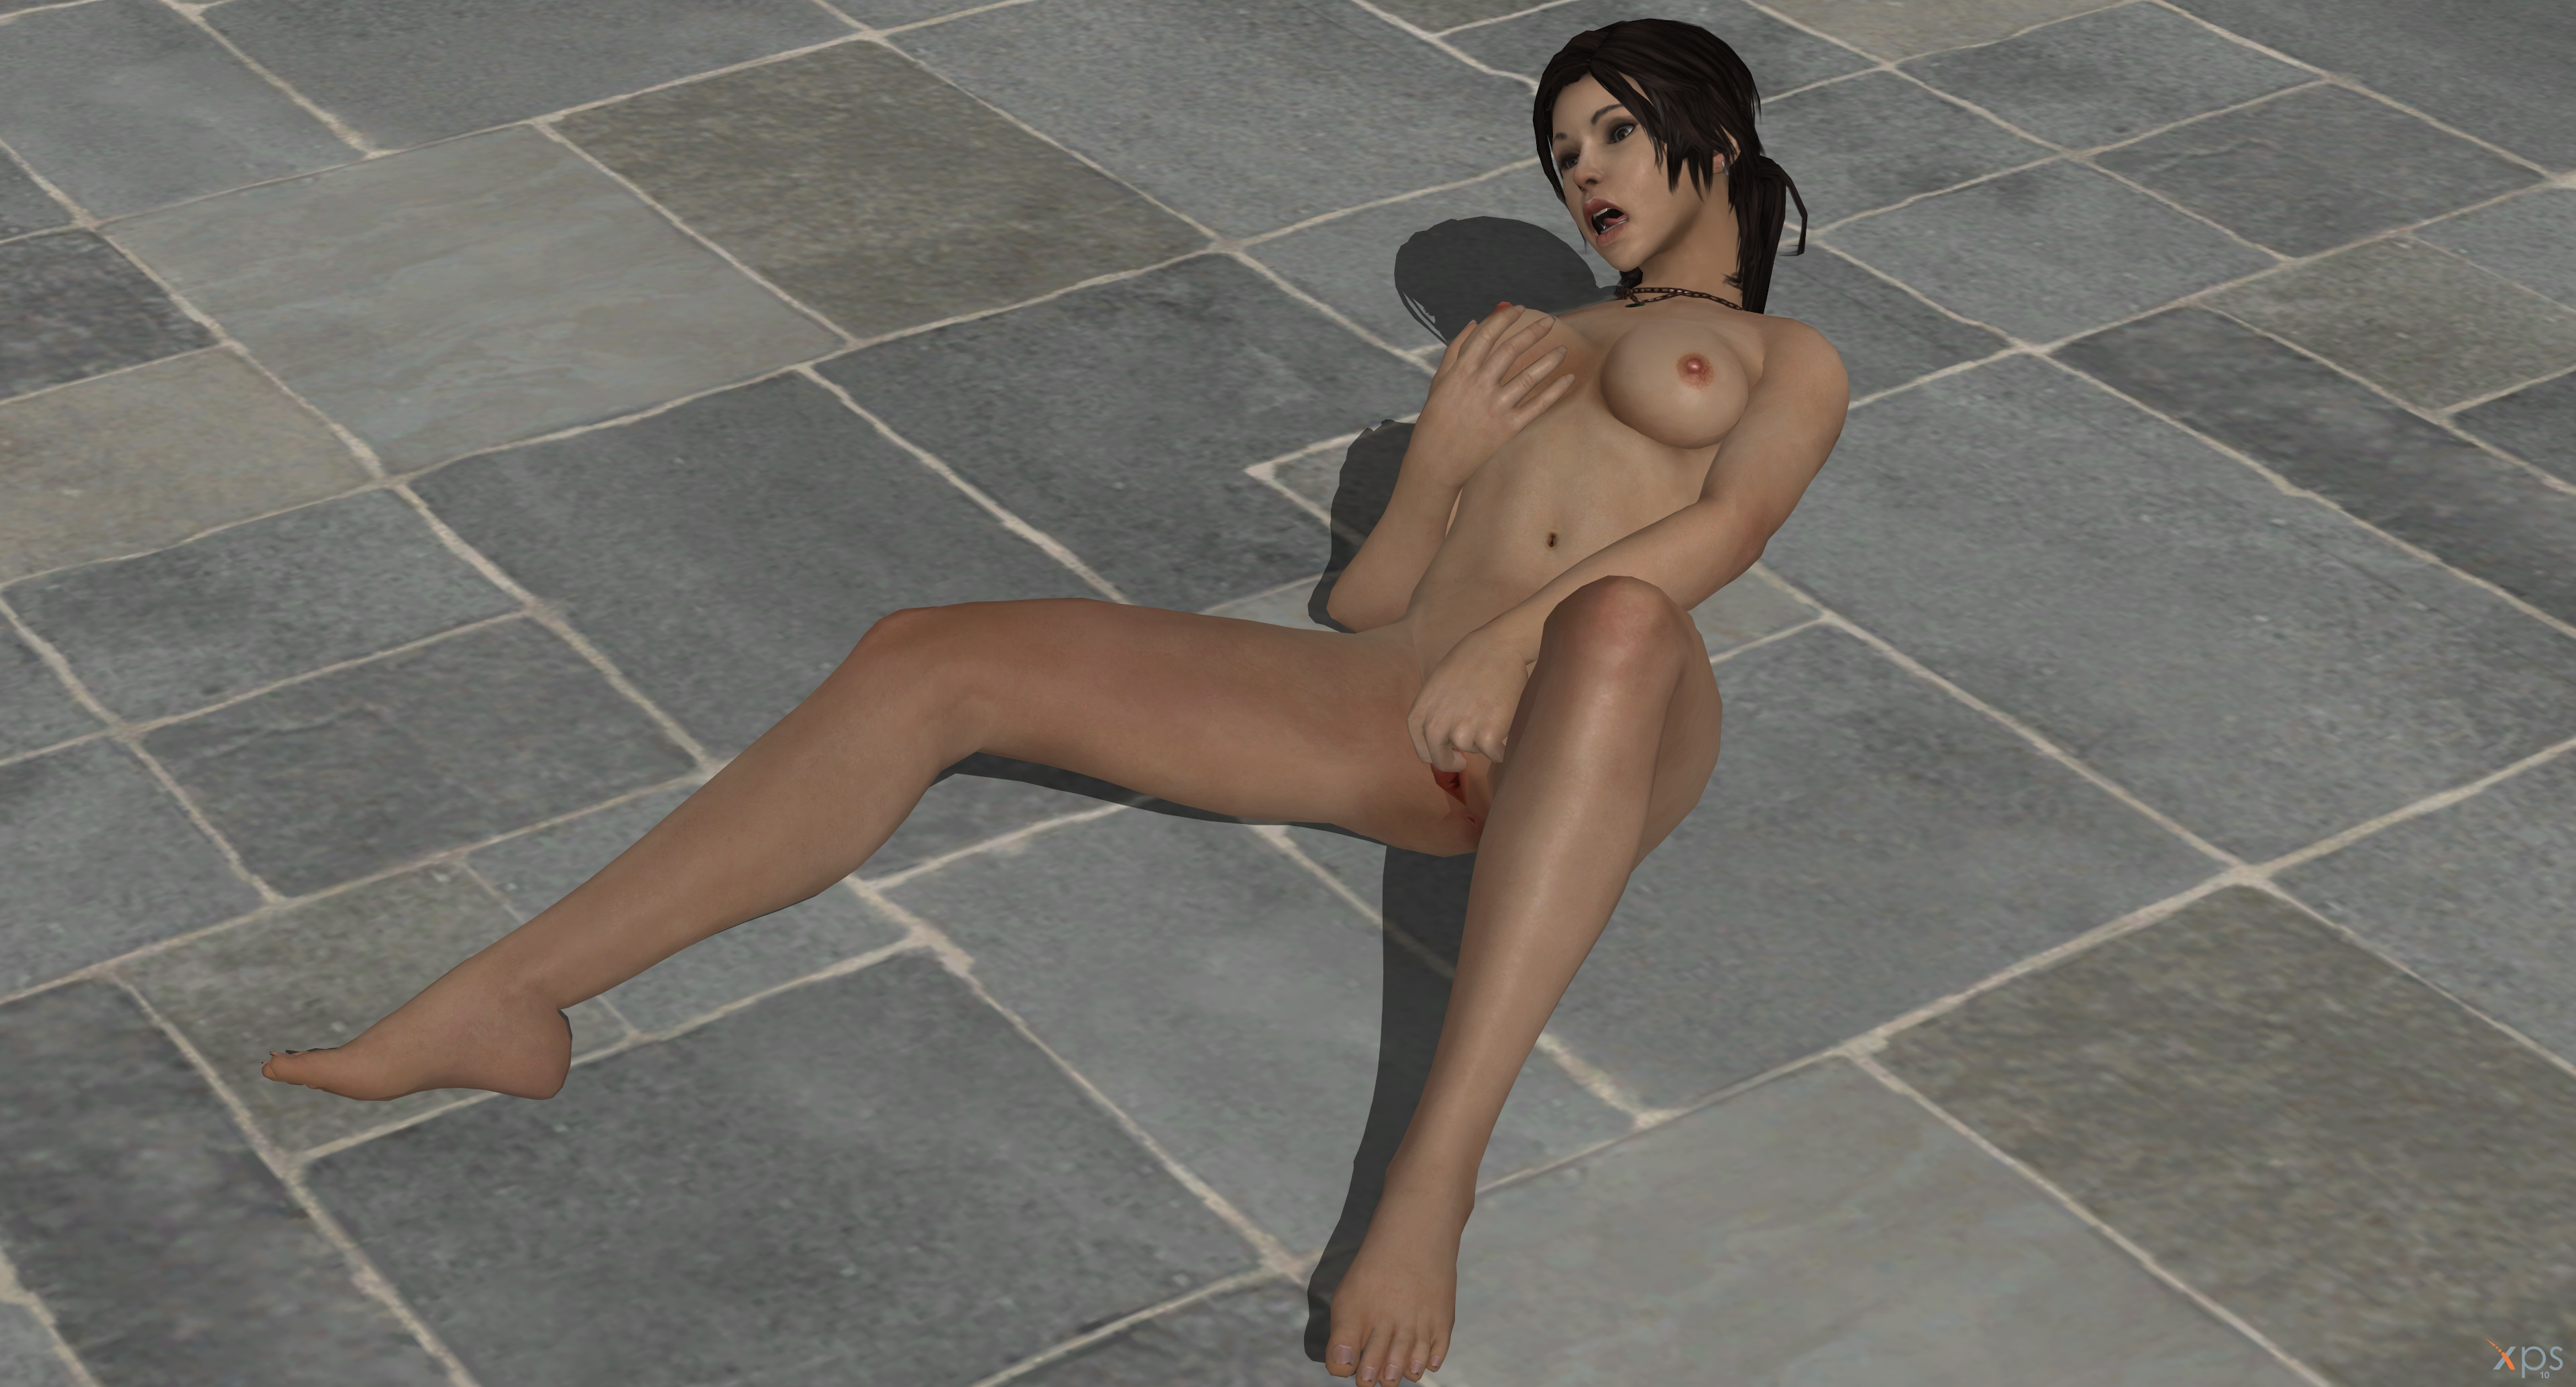 Tomb raider 2013 nude mob erotic photo